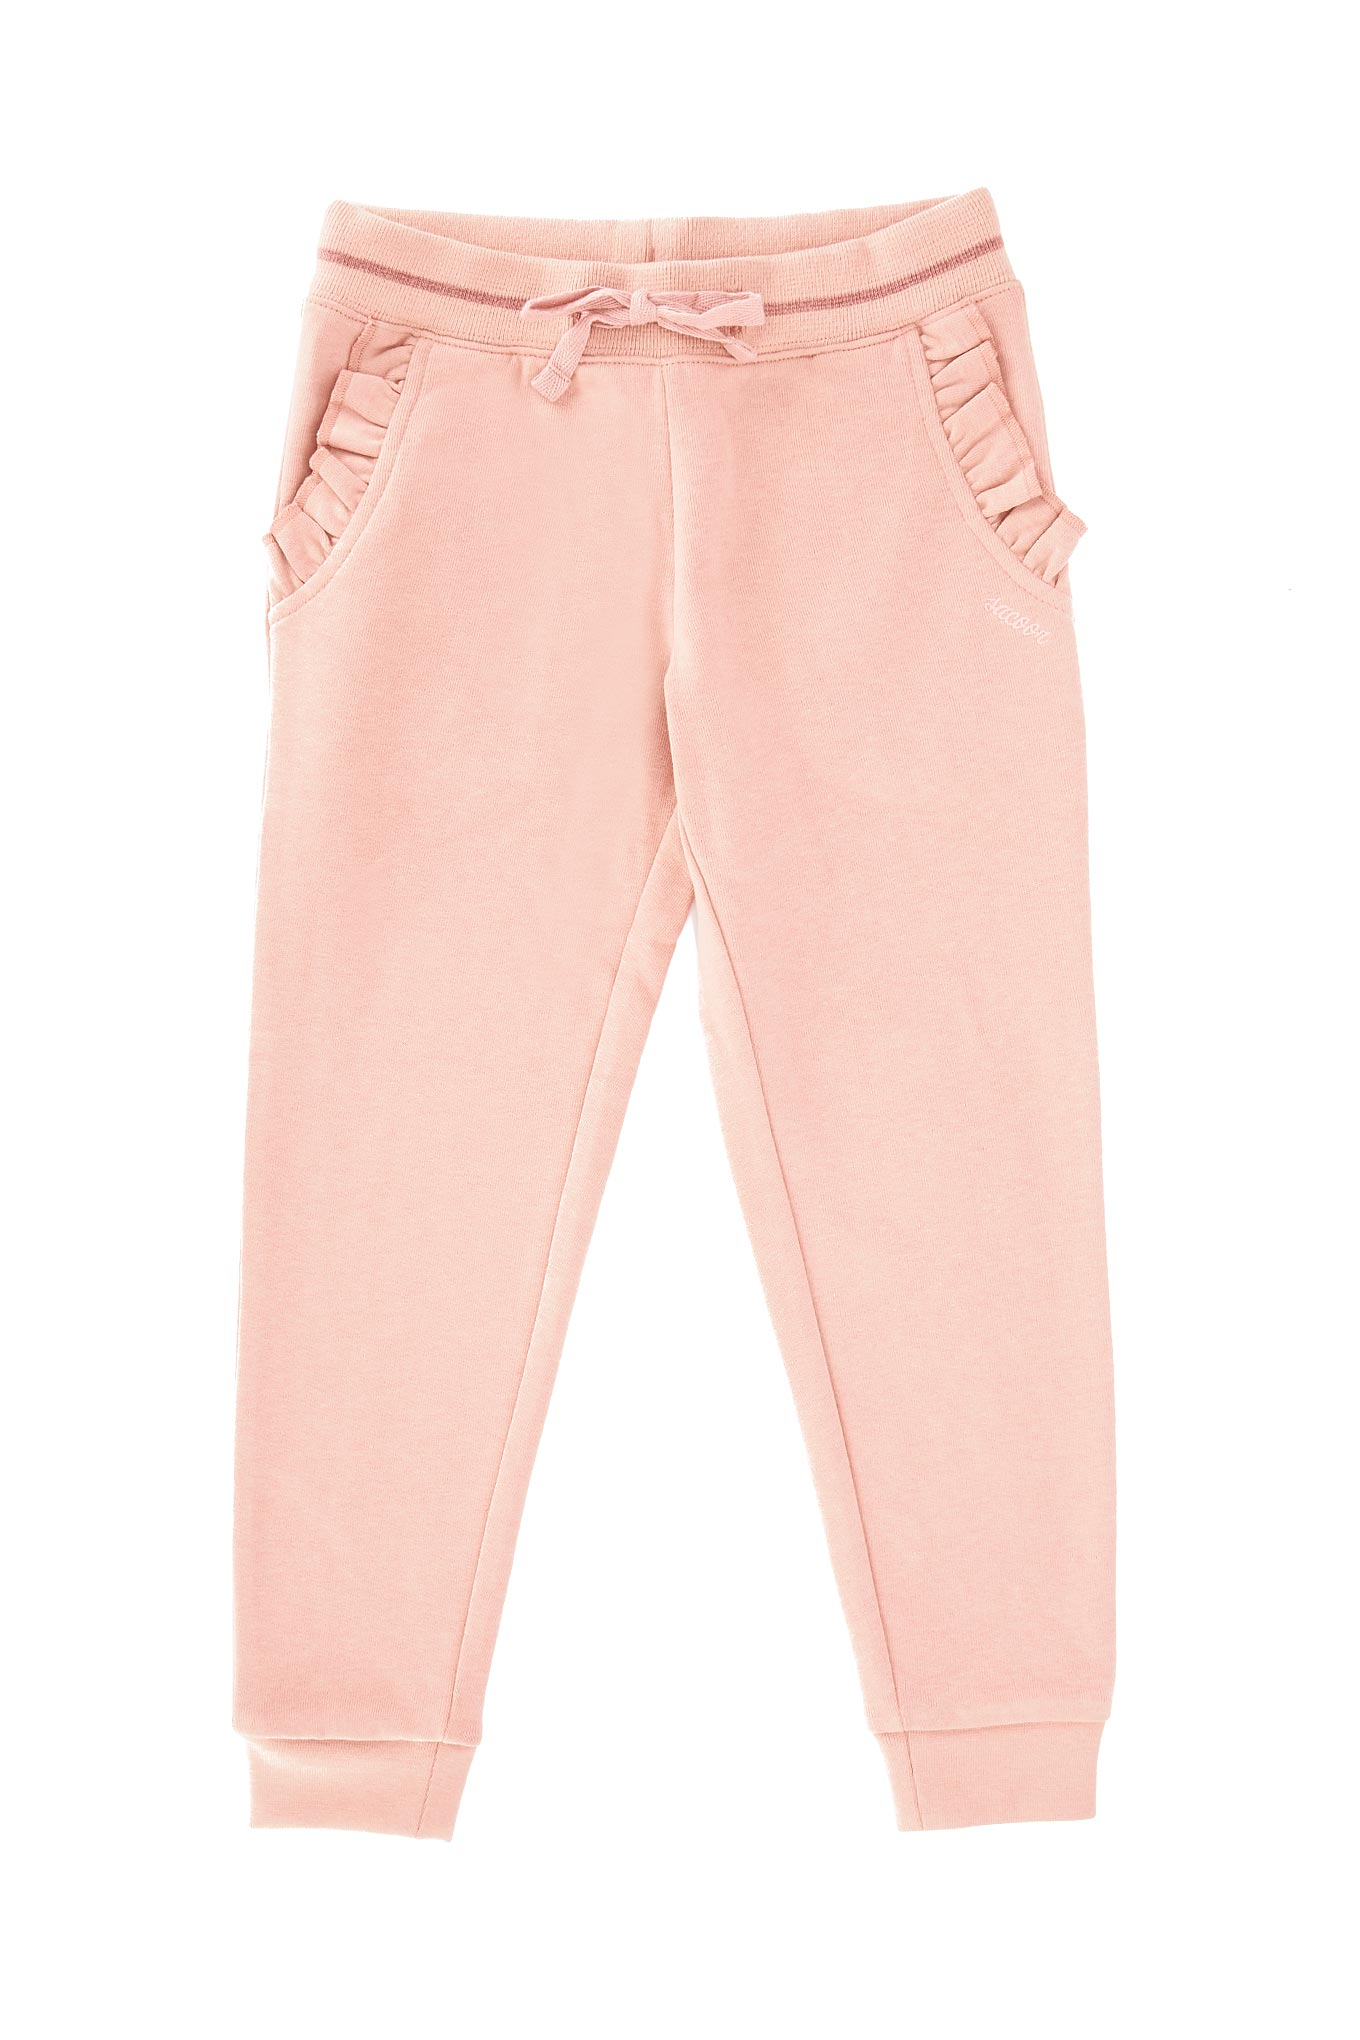 Sportswear Trousers Pink Casual Girl